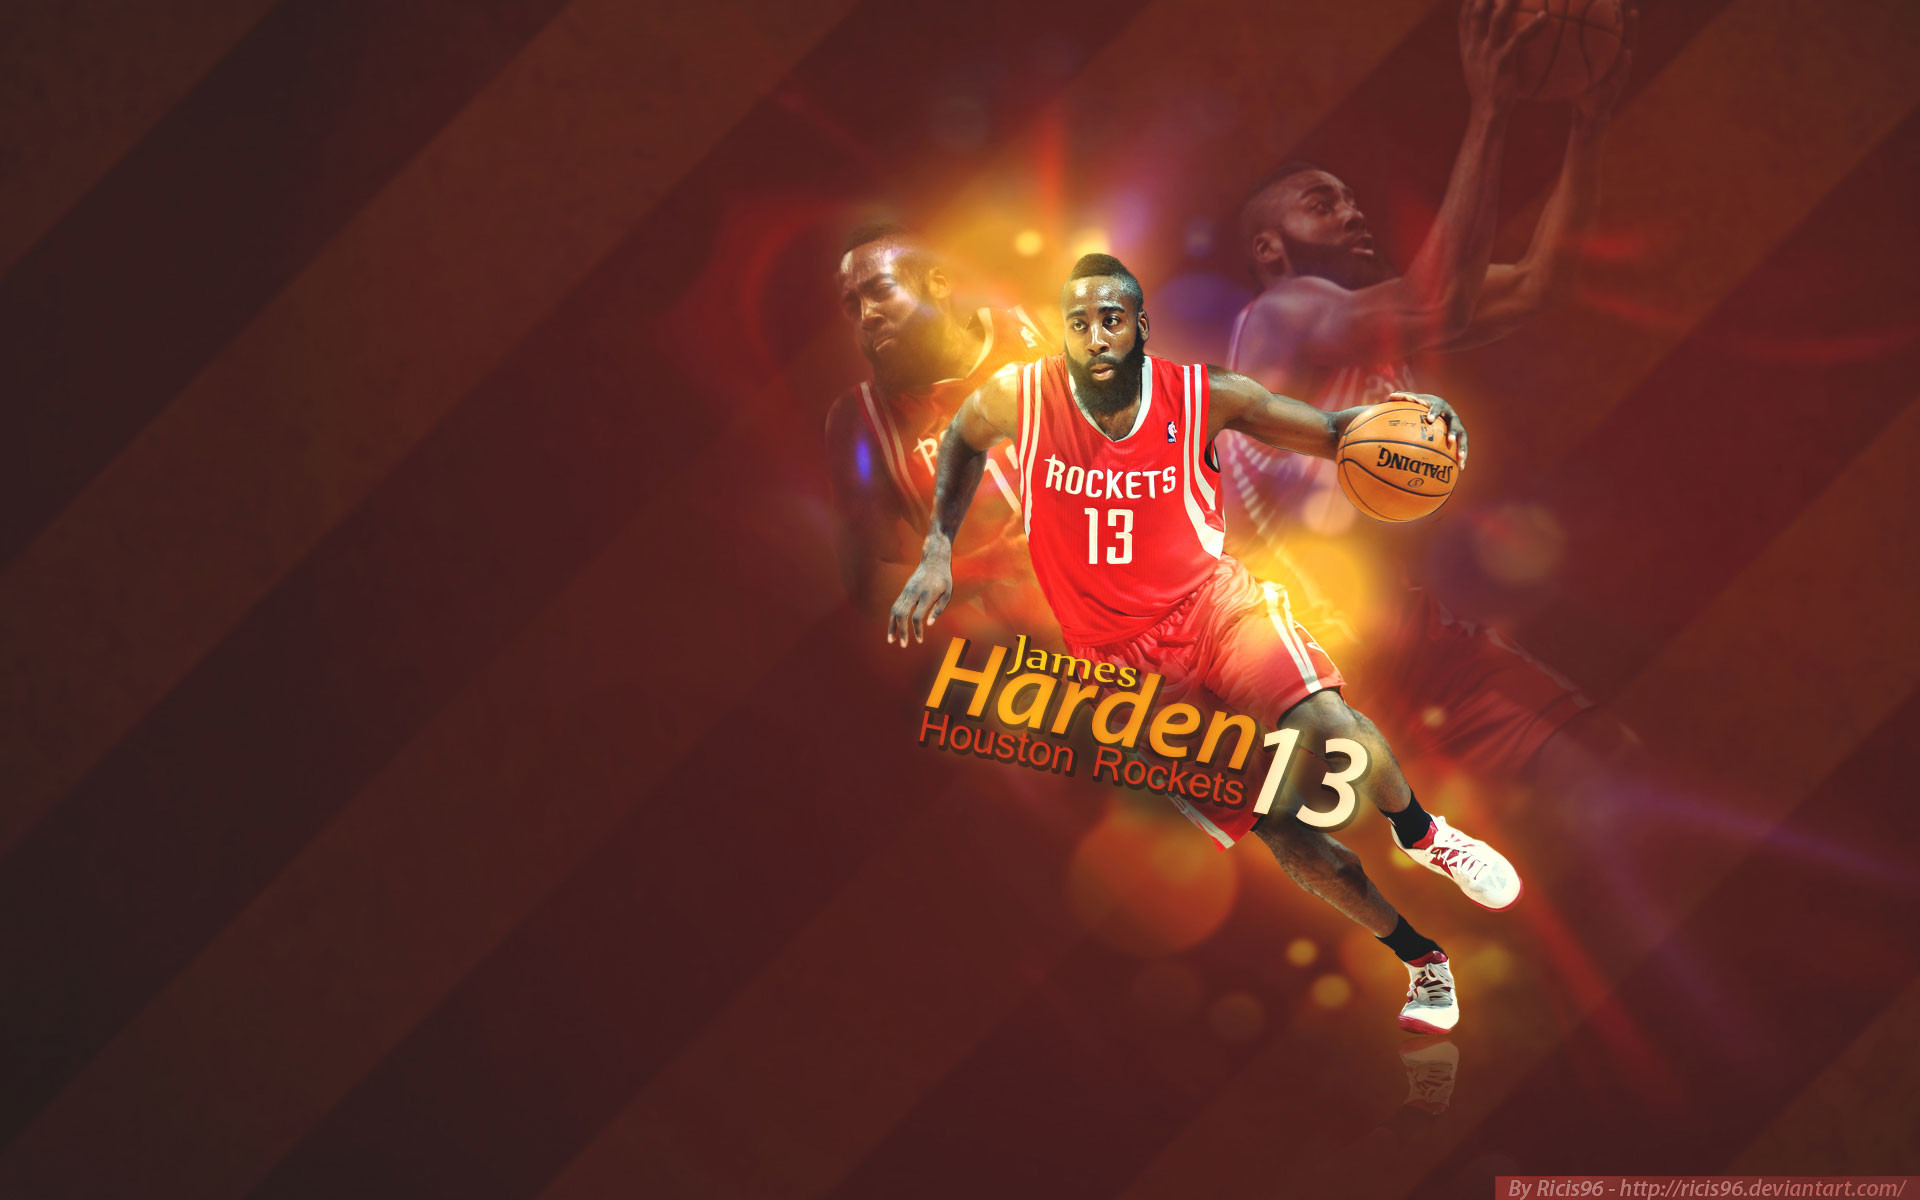 James Harden Wallpapers | Basketball Wallpapers at BasketWallpapers .